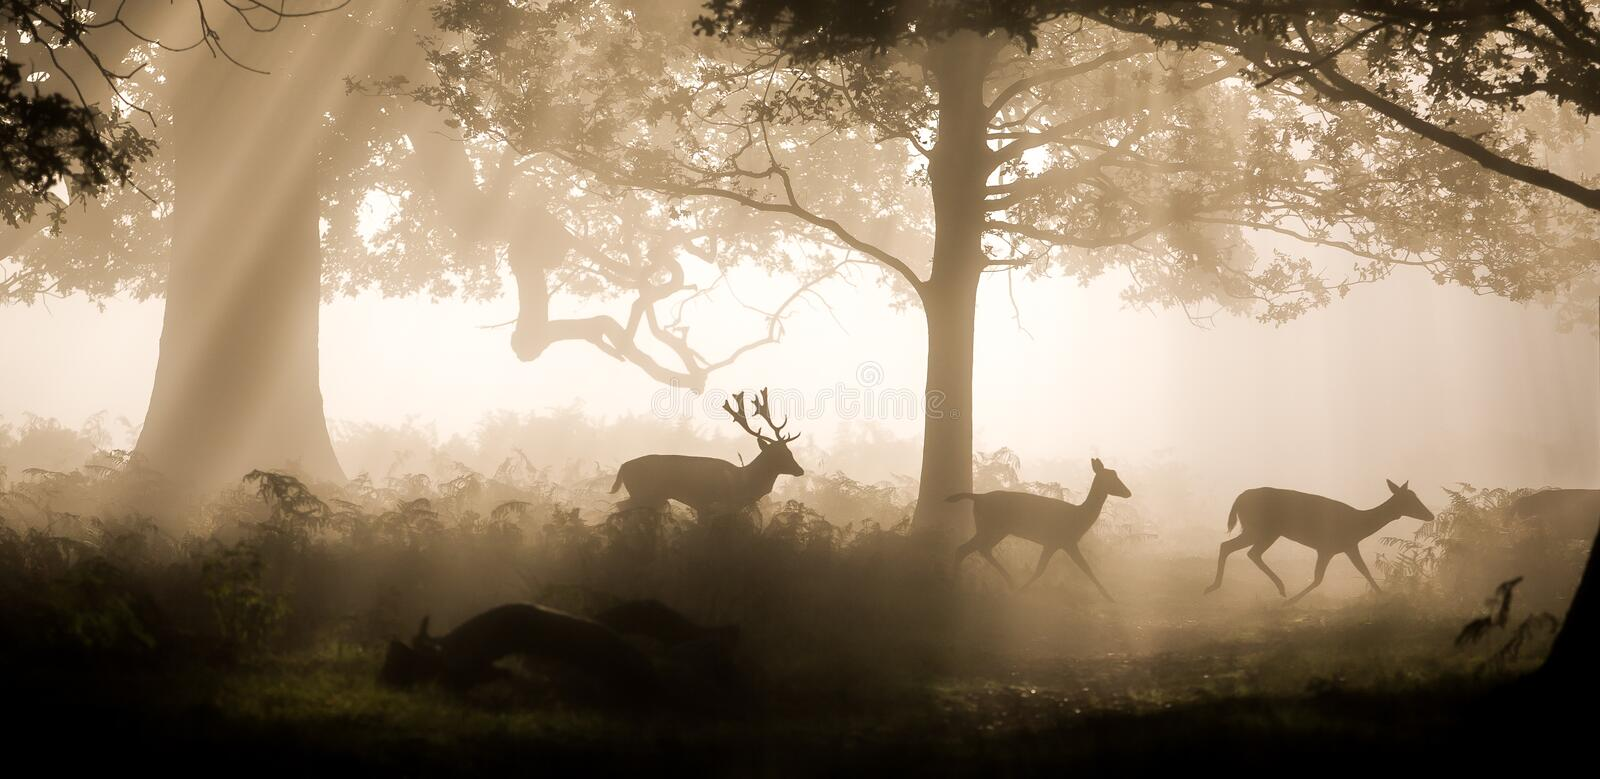 Pillage de cerfs communs images stock